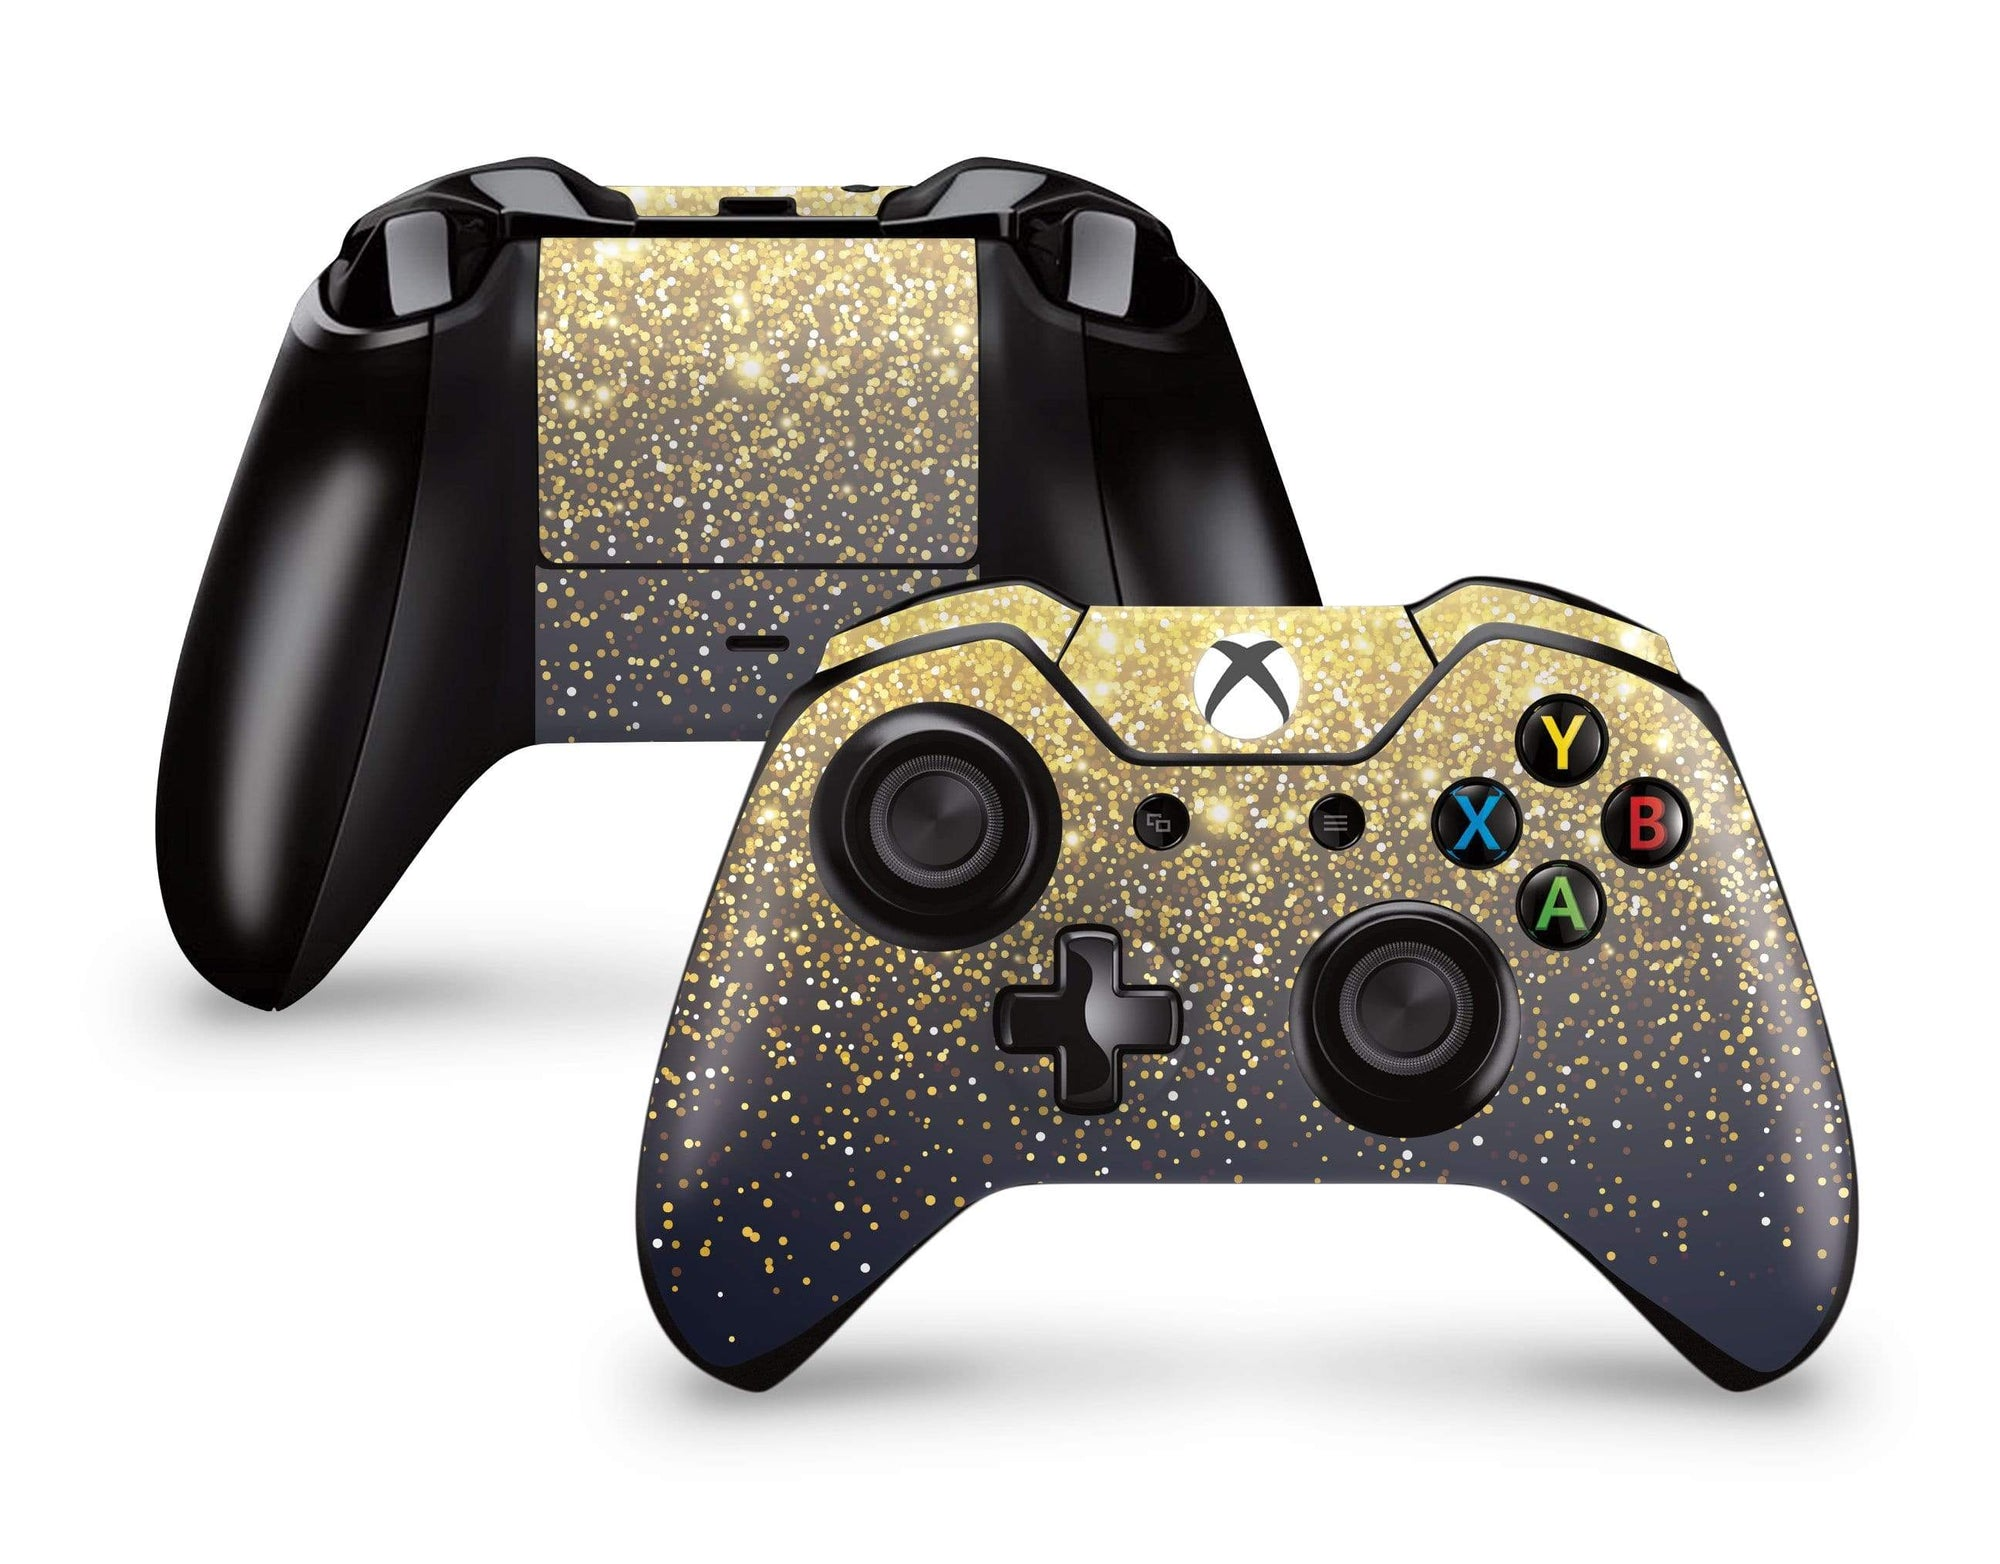 Amazon.com: SKINOWN Xbox One Controller Gold Skin Golden ... |Gold Xbox One Controller Skin